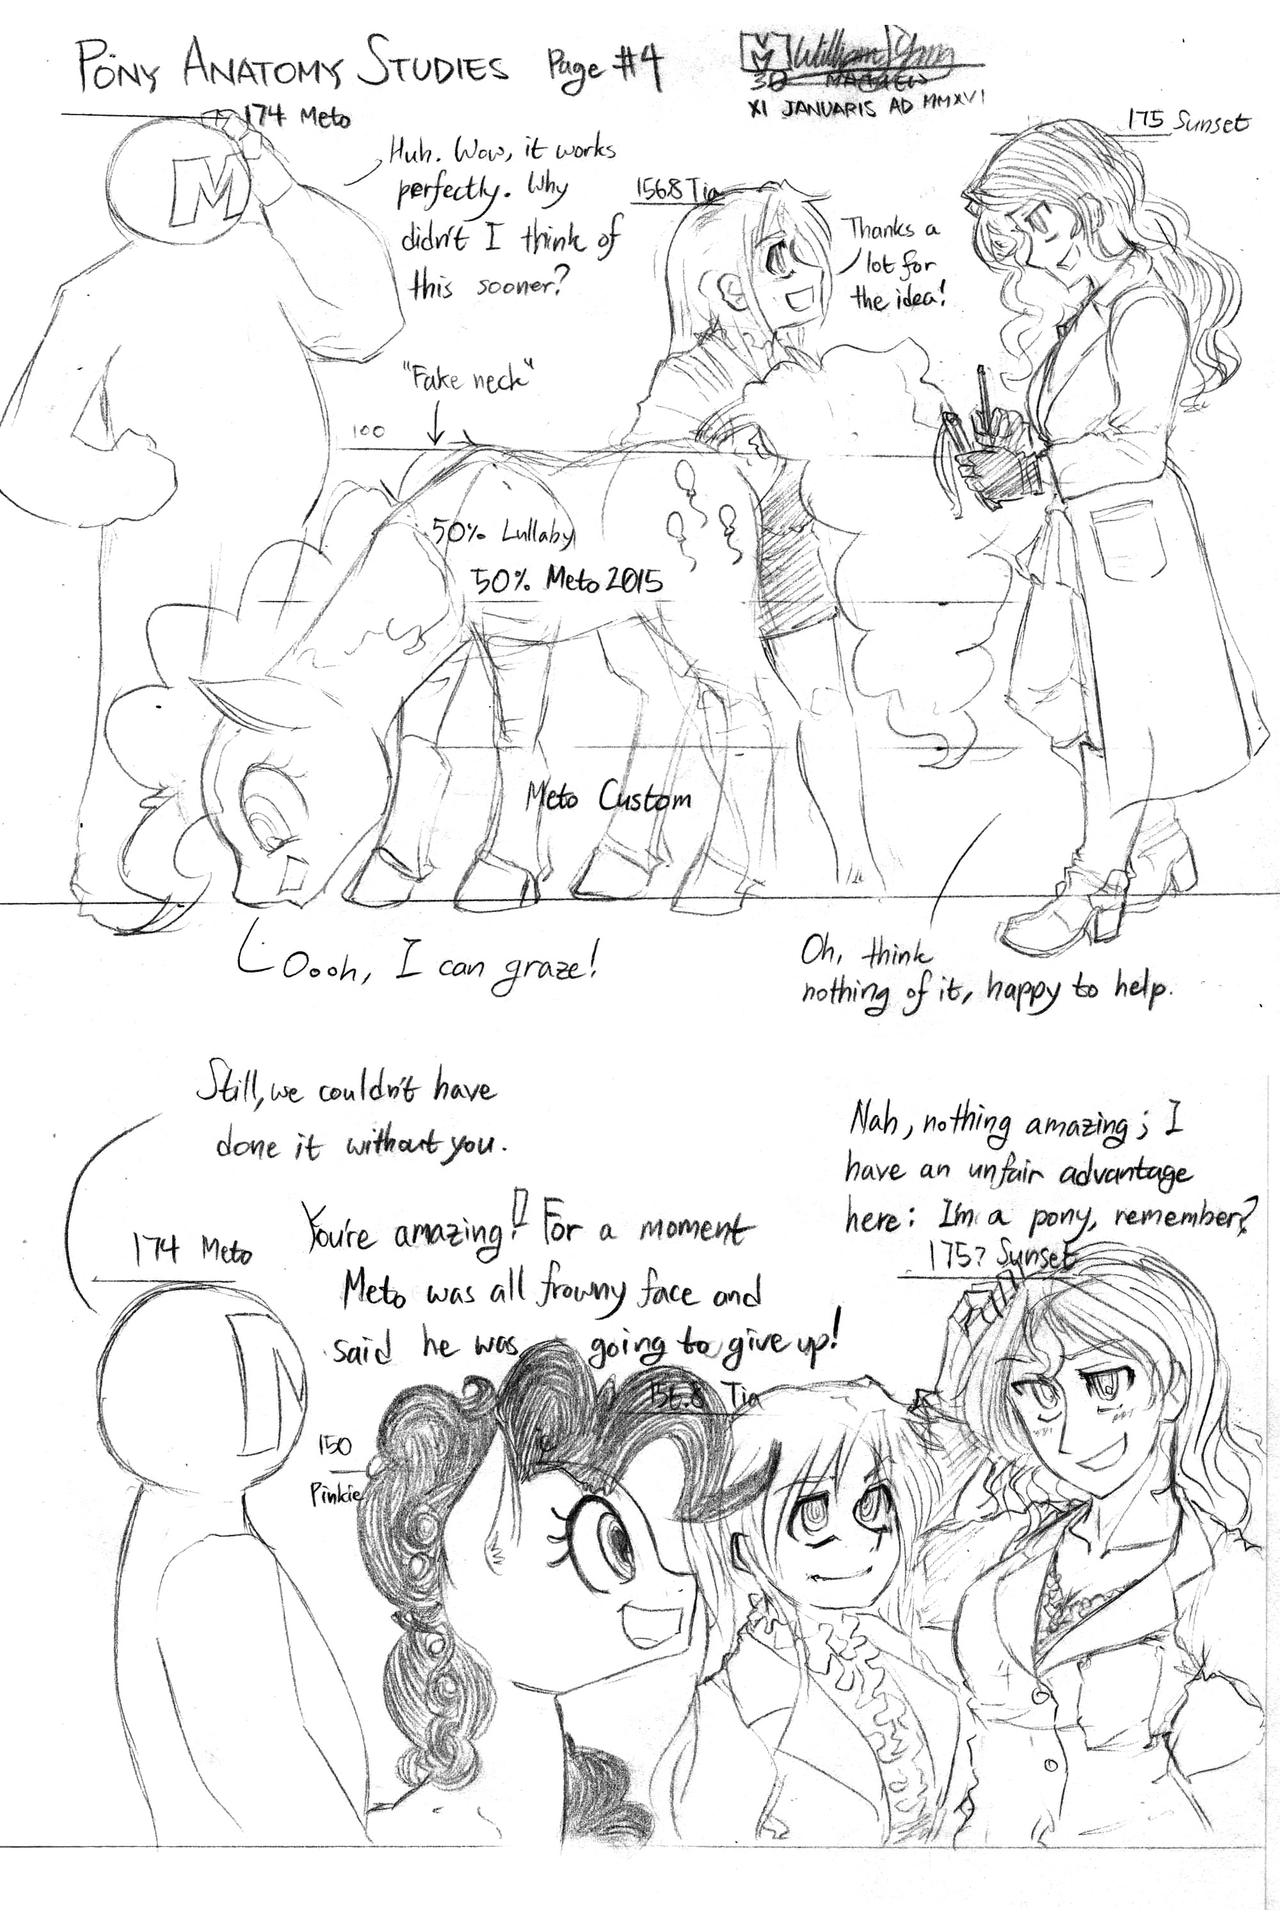 My Little Pony XCII: Suggestive Horse Noises - Page 24